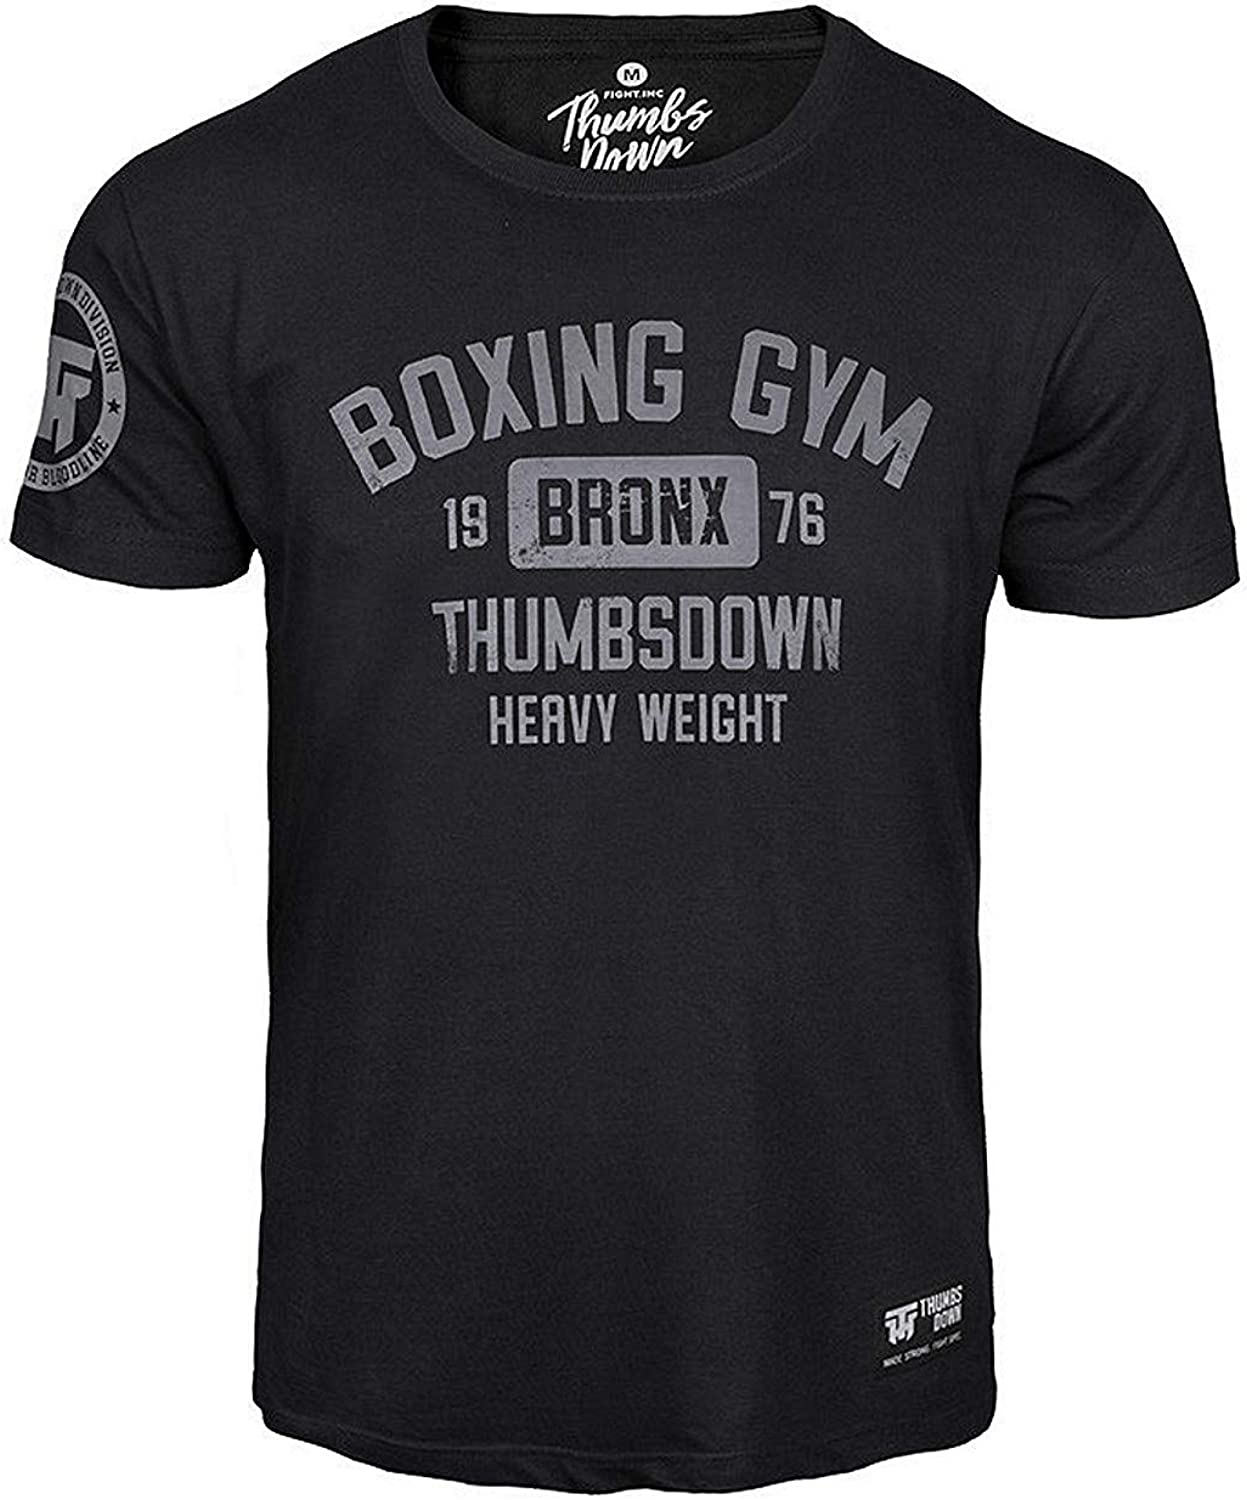 Boxing Gym Bronx Heavy Weight Thumbs Down Homme T-Shirt Martial Arts Casual